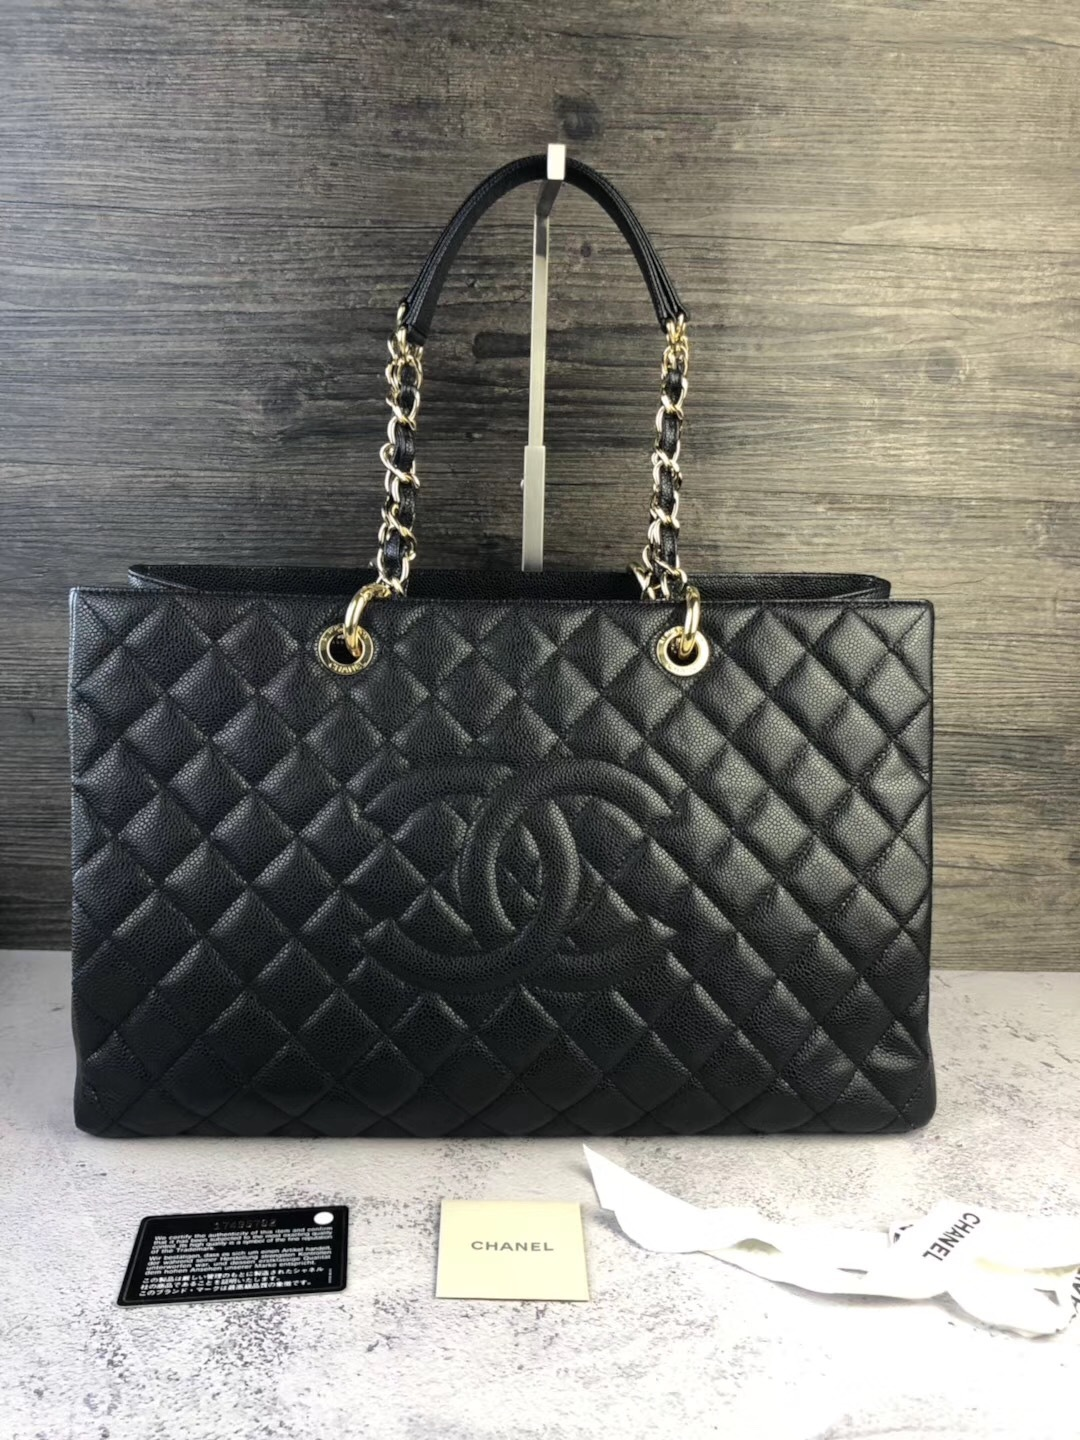 8bc12b7d99f5 6b555fba f39b 42b2 95fd 52d86b53b2ce. 6b555fba f39b 42b2 95fd 52d86b53b2ce.  Previous. AUTHENTIC CHANEL BLACK QUILTED CAVIAR XL GST GRAND SHOPPING TOTE  BAG ...